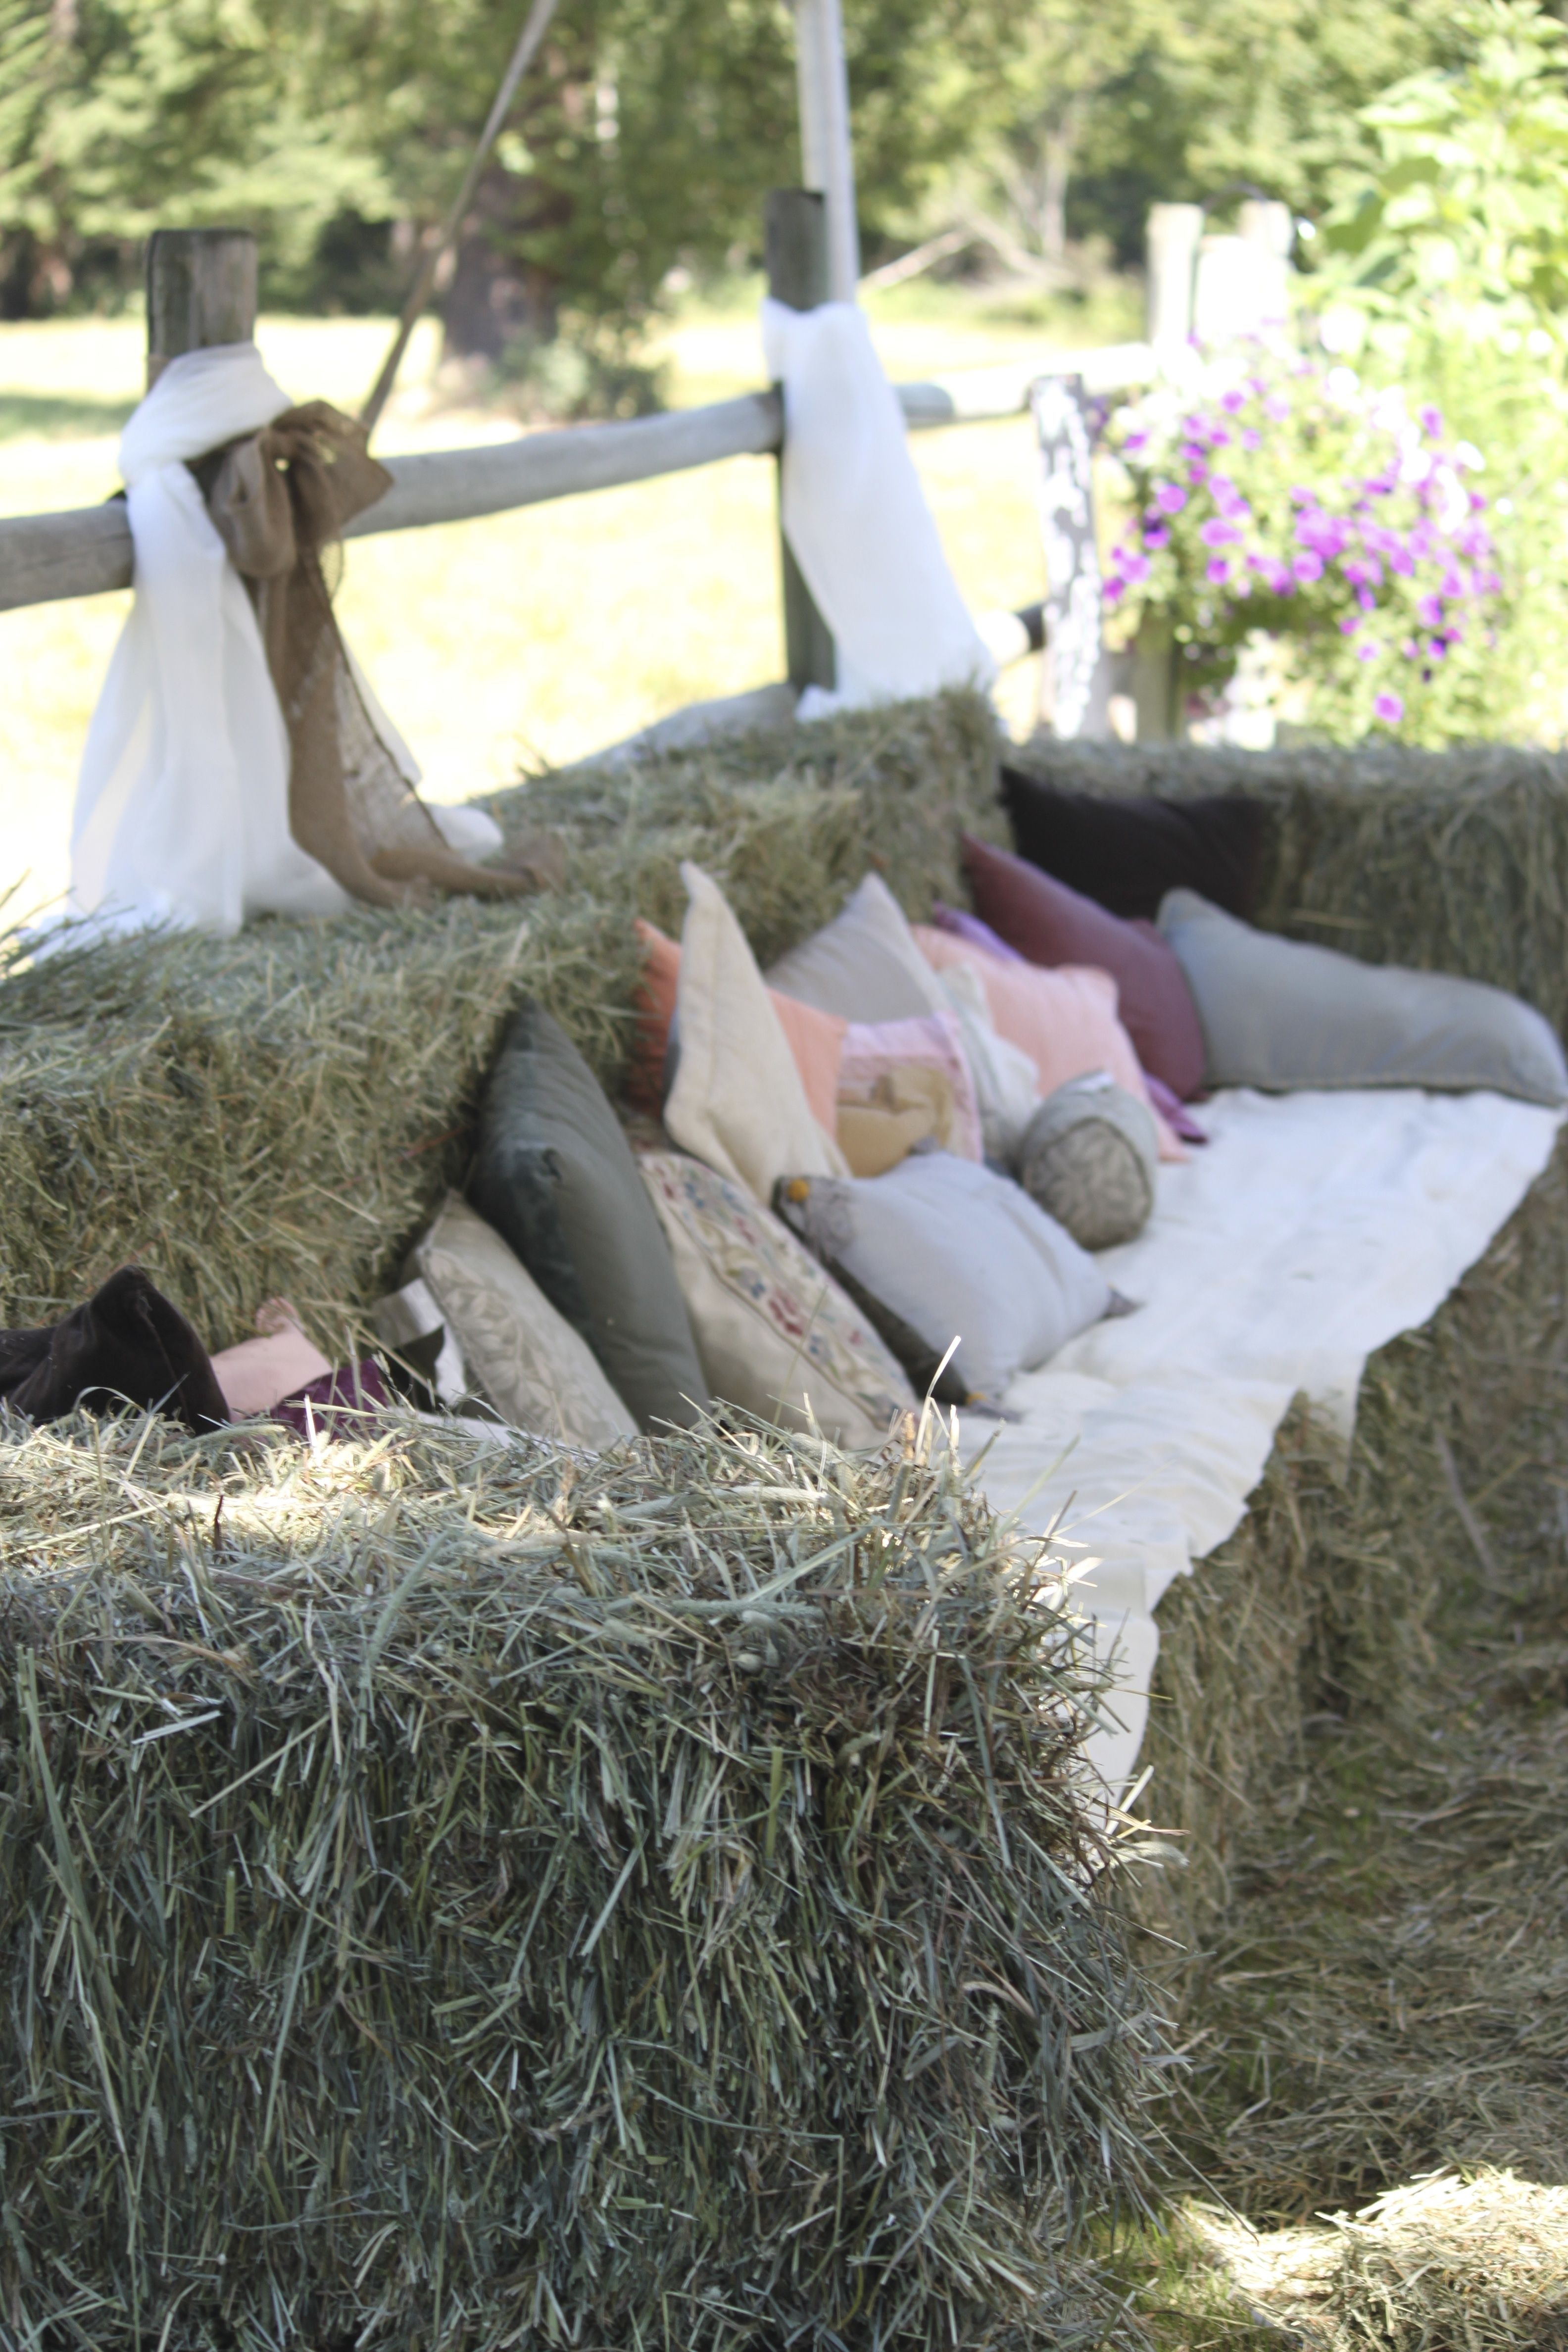 Hay bale sofa - was a great place to sit and visit.